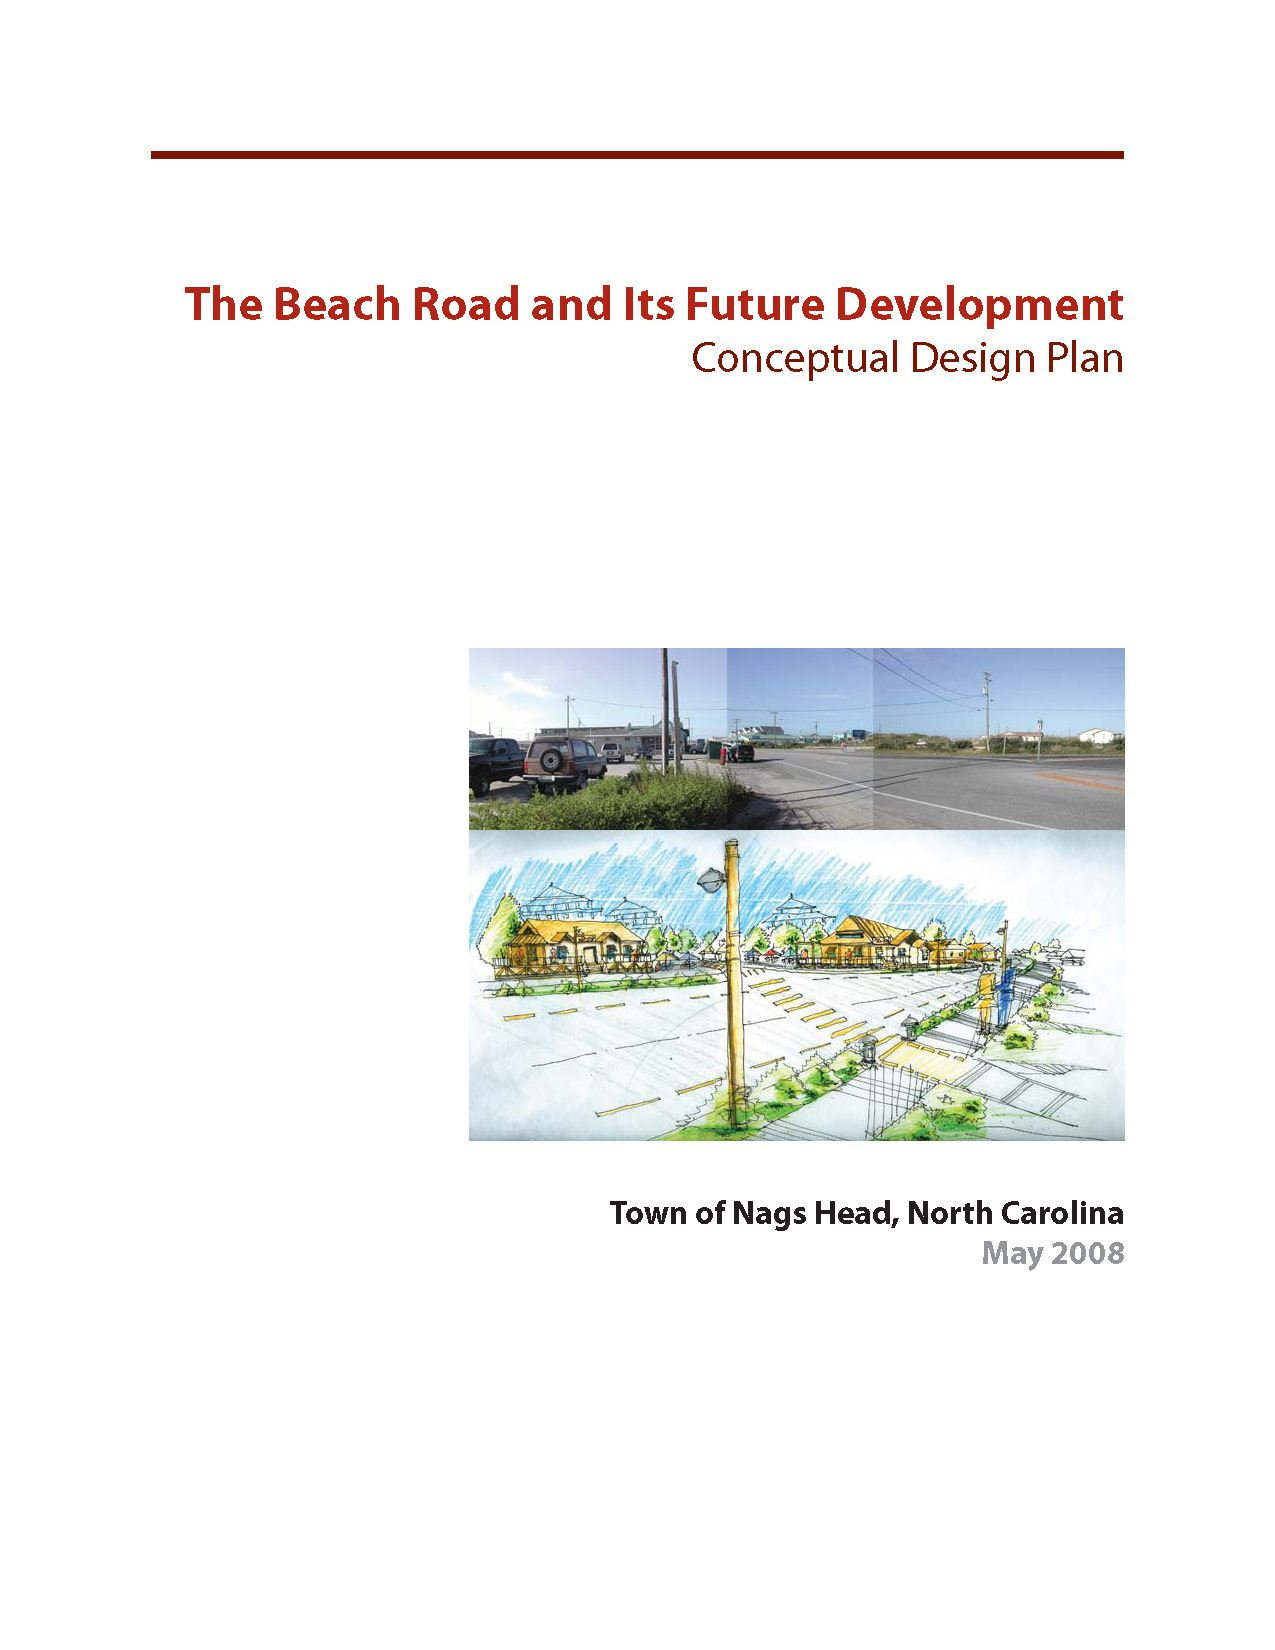 The Beach Road Study Report